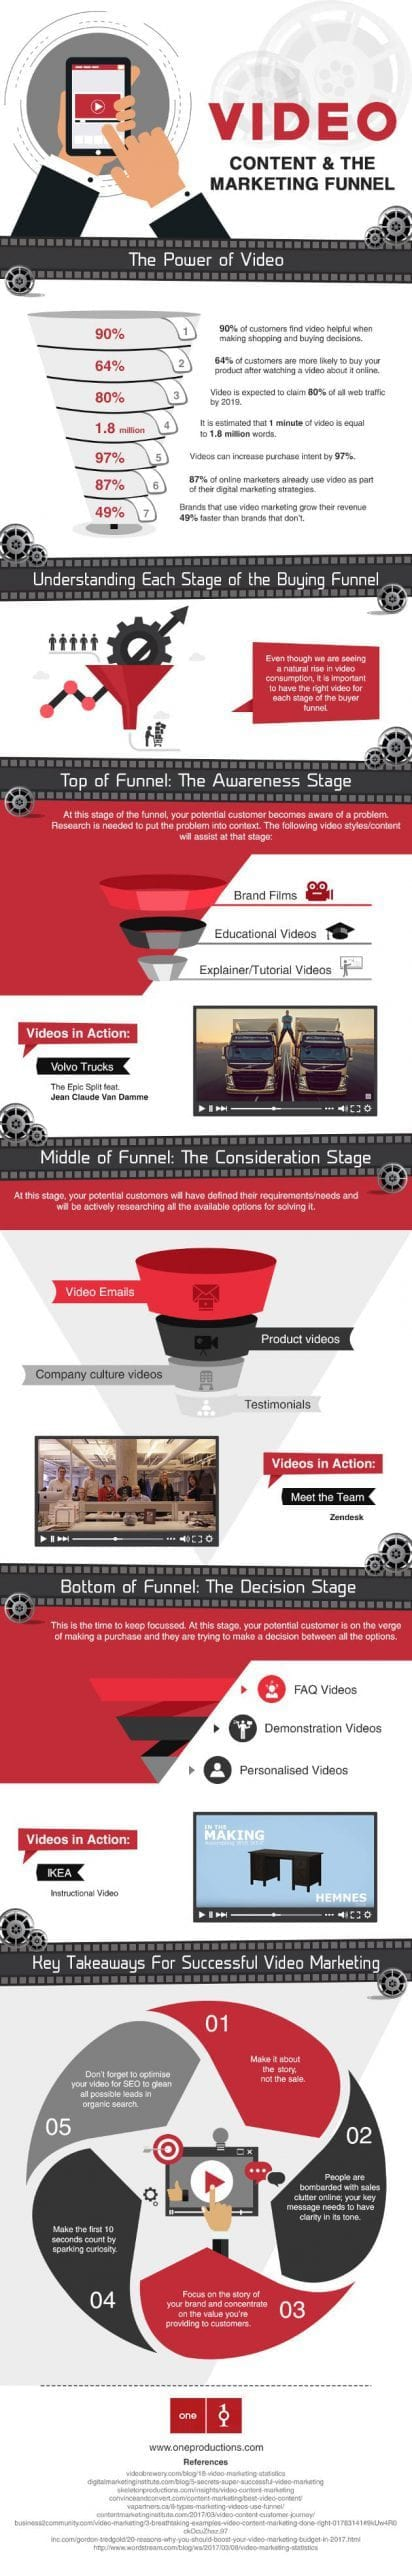 i-marketingprofs-com170706-infographic-video-37bf9ab83cb4f5f7145ef3ec0015490b2544be03-4698286